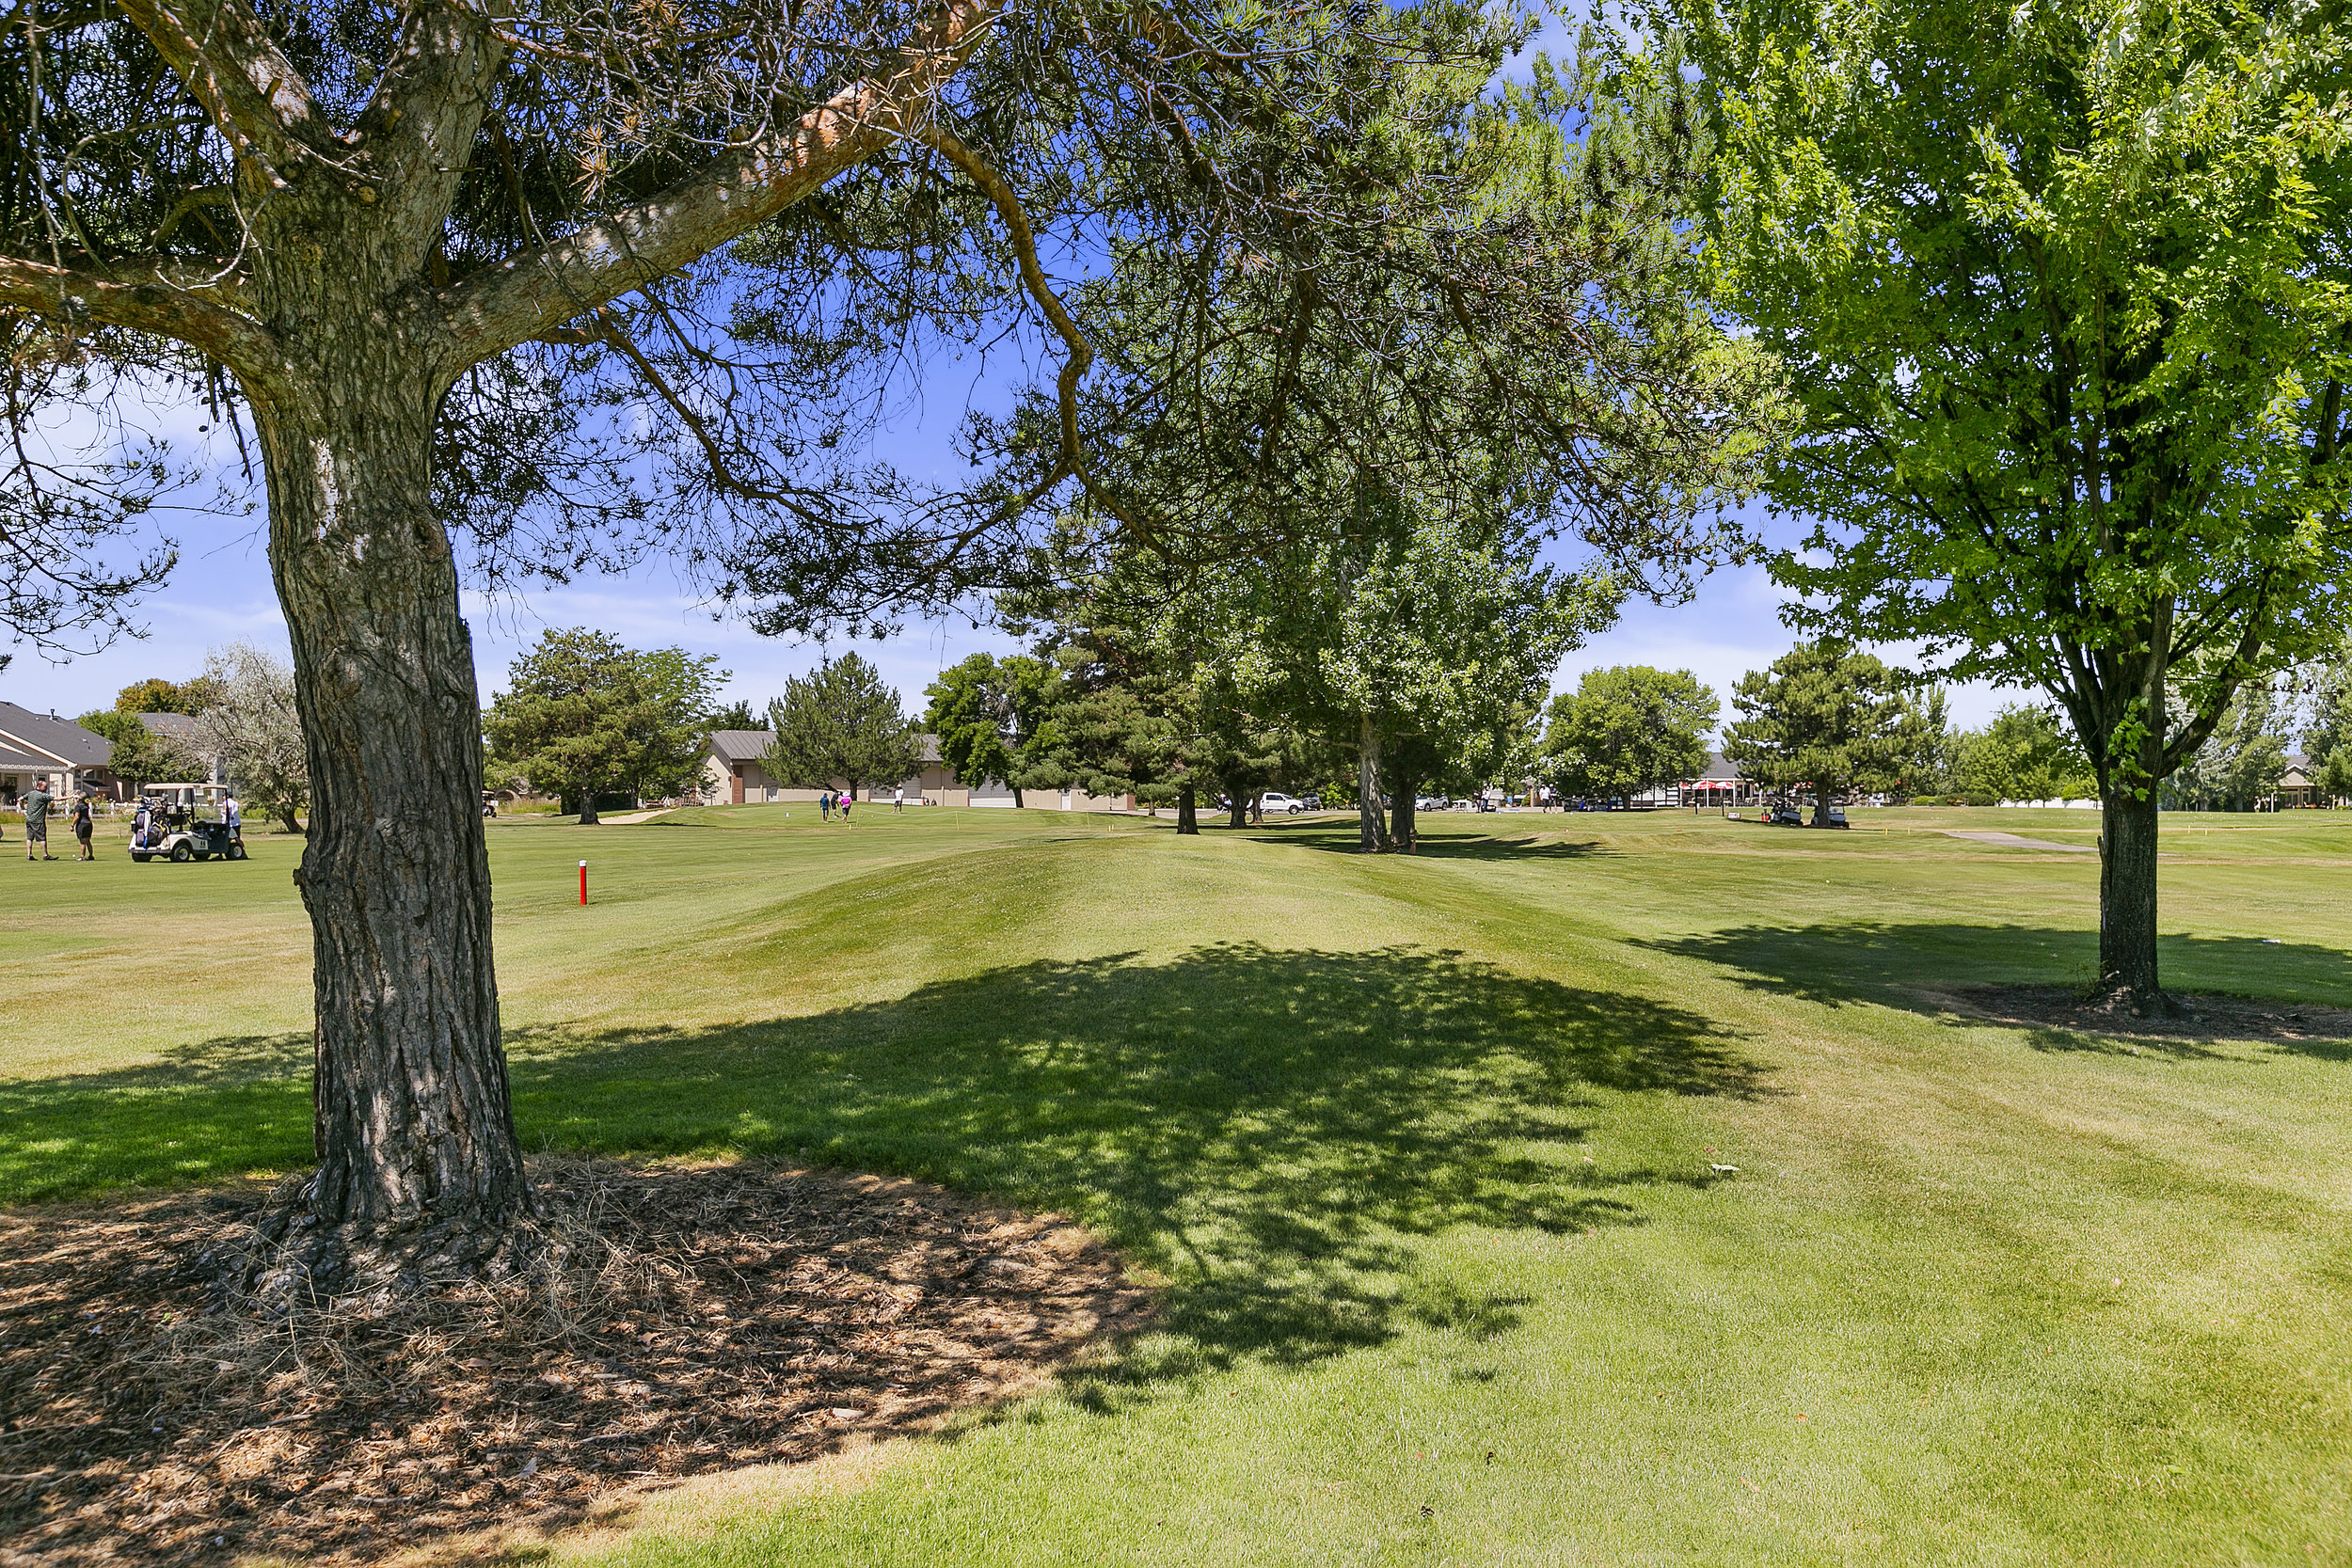 049-Lakeview Golfcourse (12).jpg